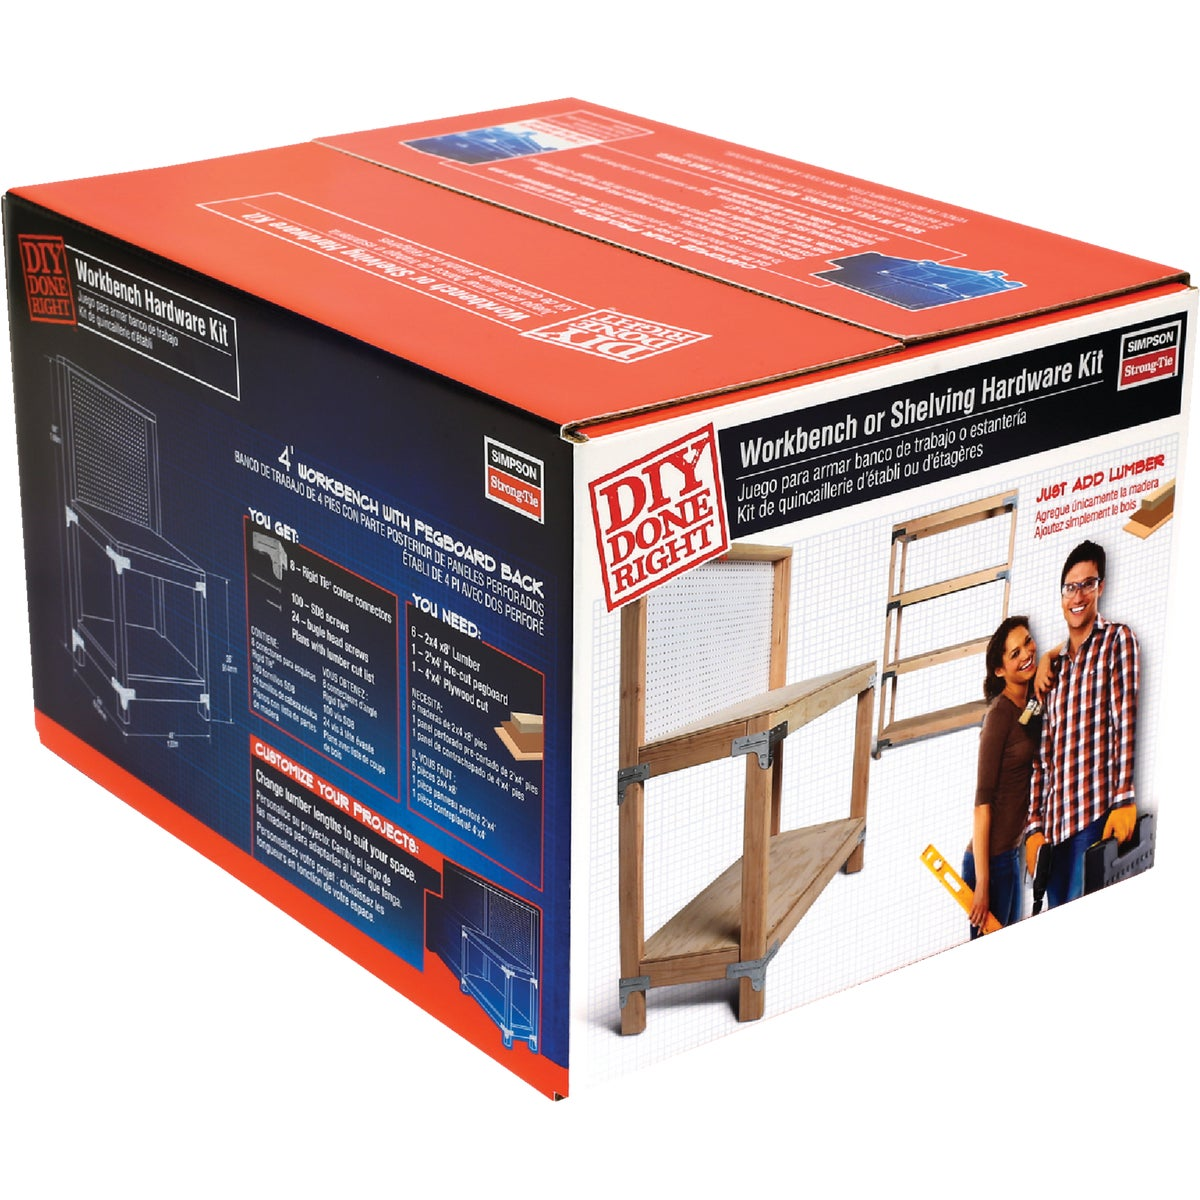 WORKBENCH SHELVING KIT - WBSK by Simpson Strong Tie